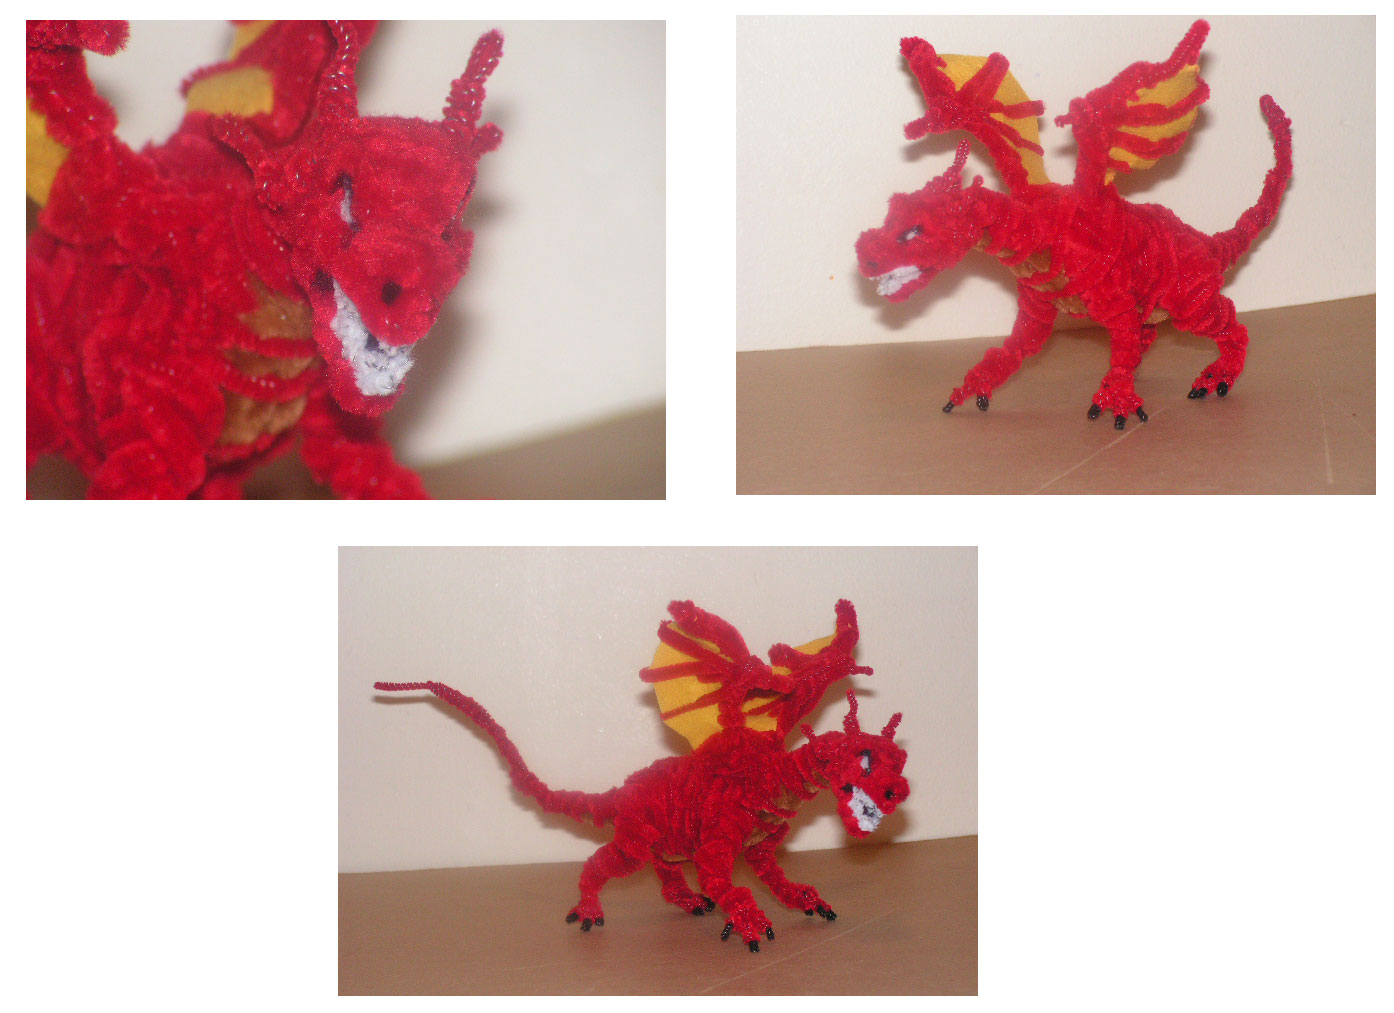 Smaug by fuzzyfigureguy